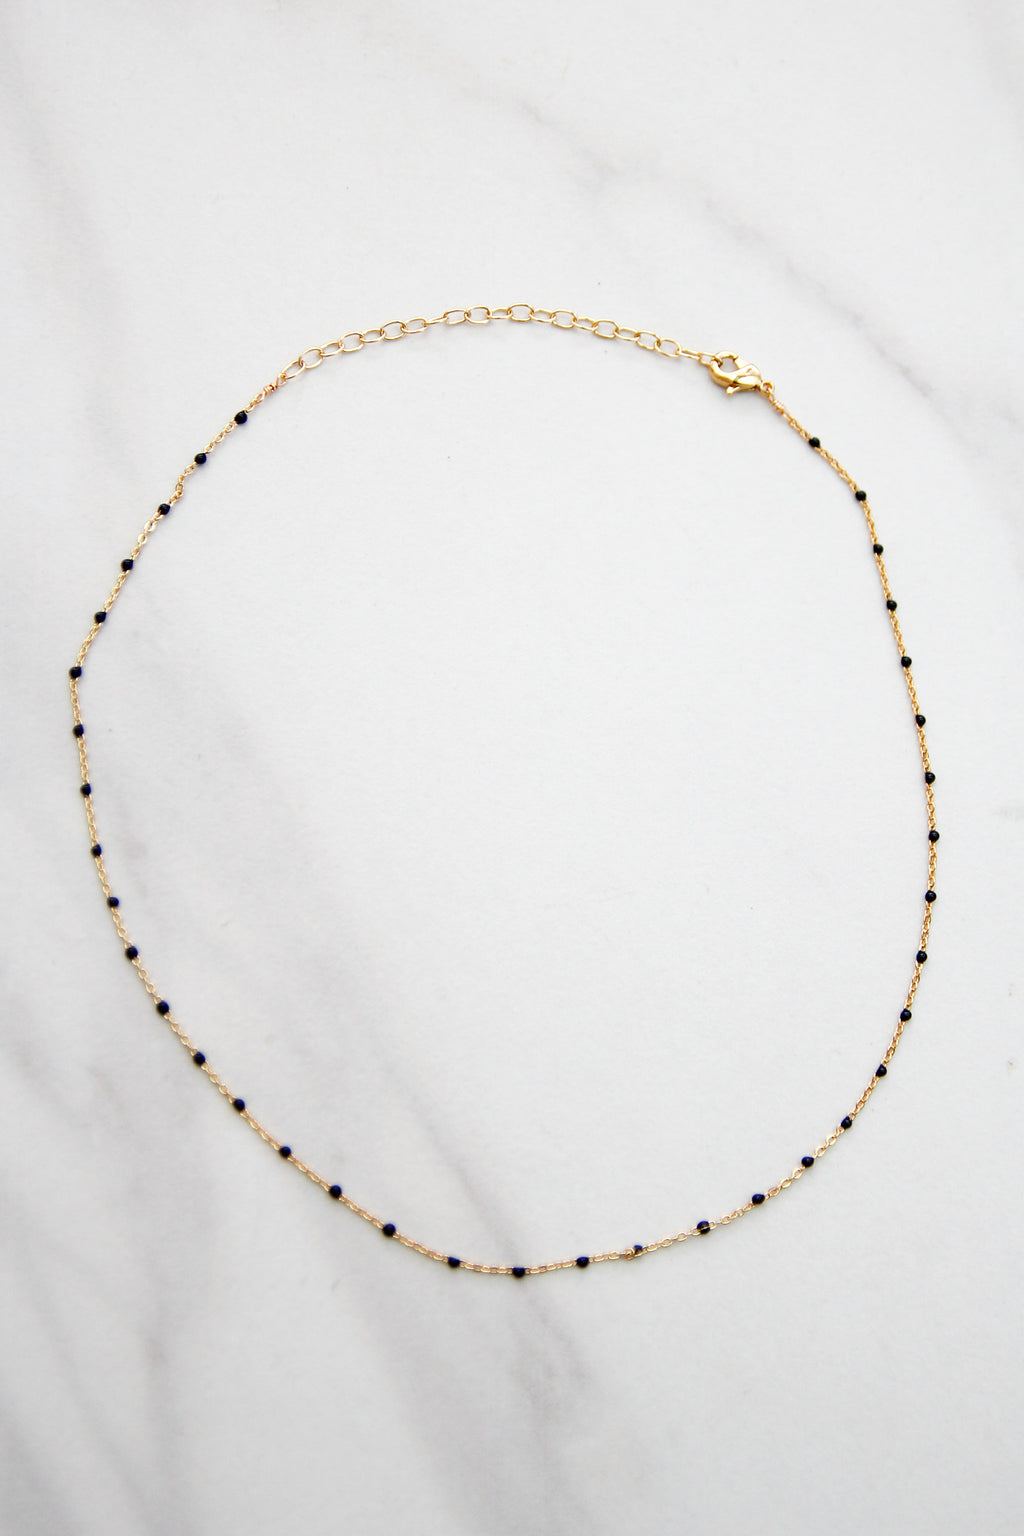 Delicate Situation Choker - Black